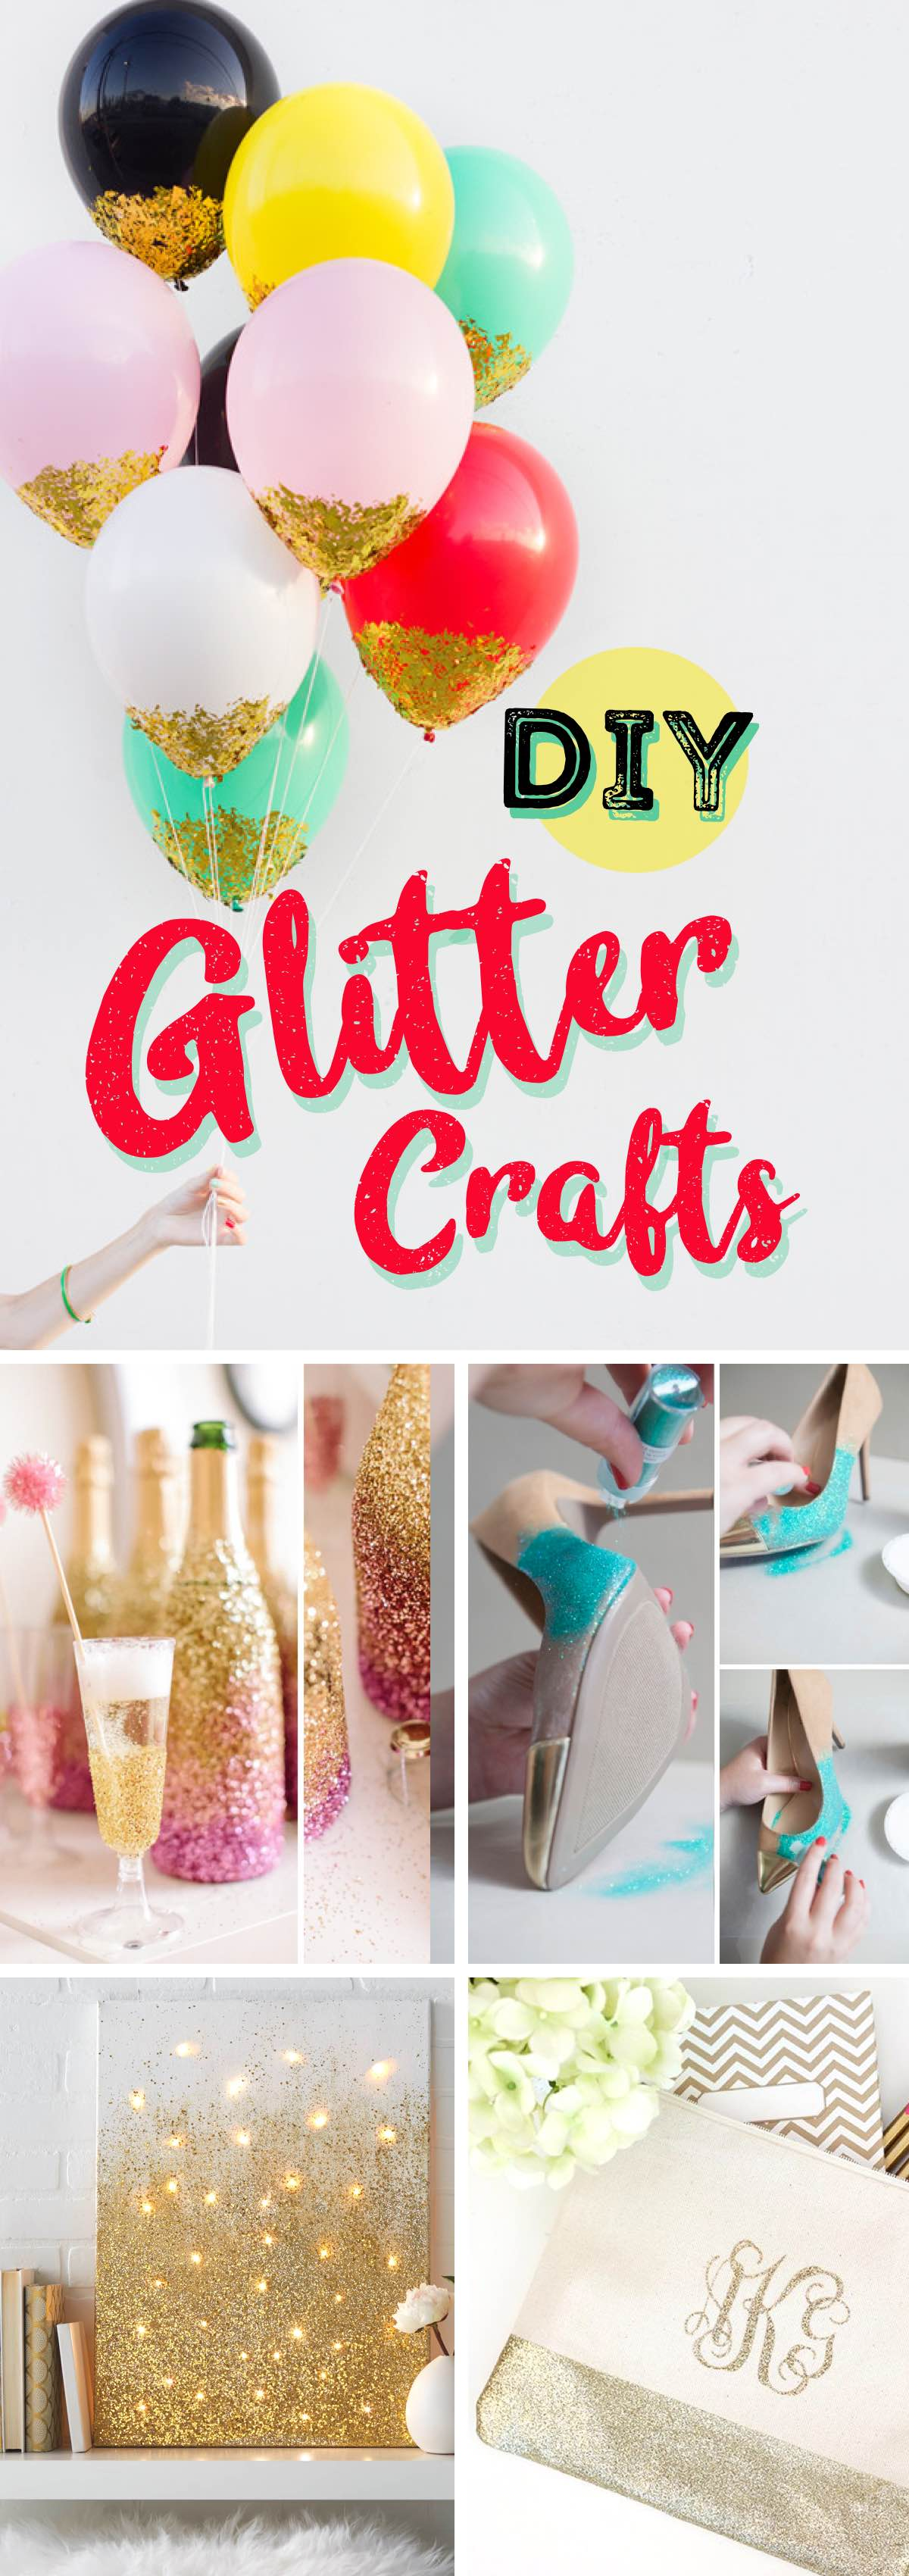 24 DIY Glitter Crafts Adding A Lot More Shine To Your Life!